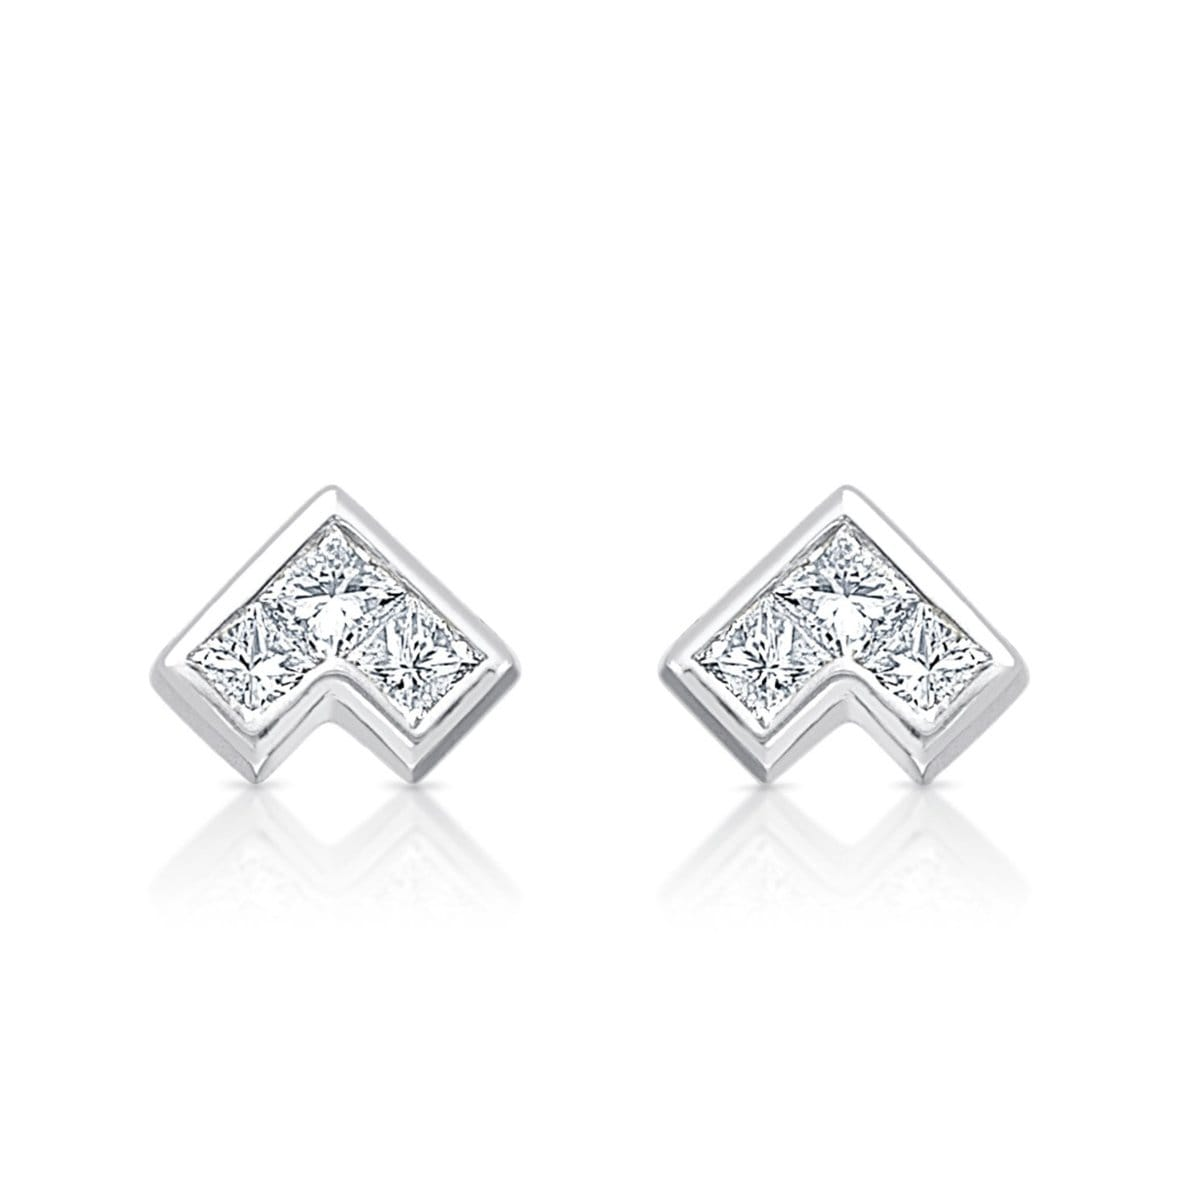 White gold princess cut diamond studs